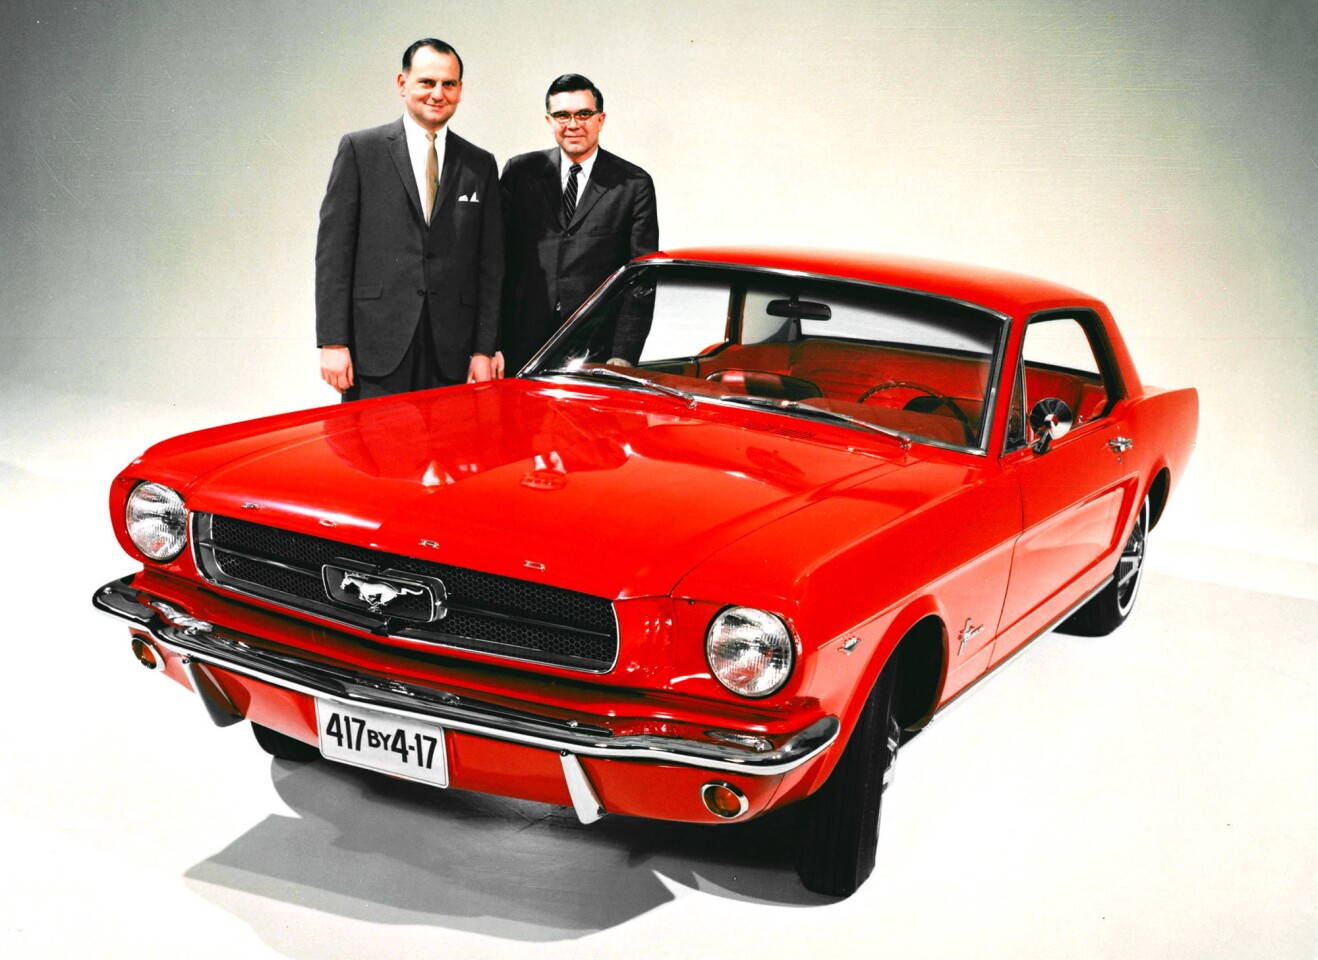 Ford Motor Co. executives Lee Iacocca and Don Frey are shown with an early Mustang. They were instrumental figures in the company's racing program of the 1960s.